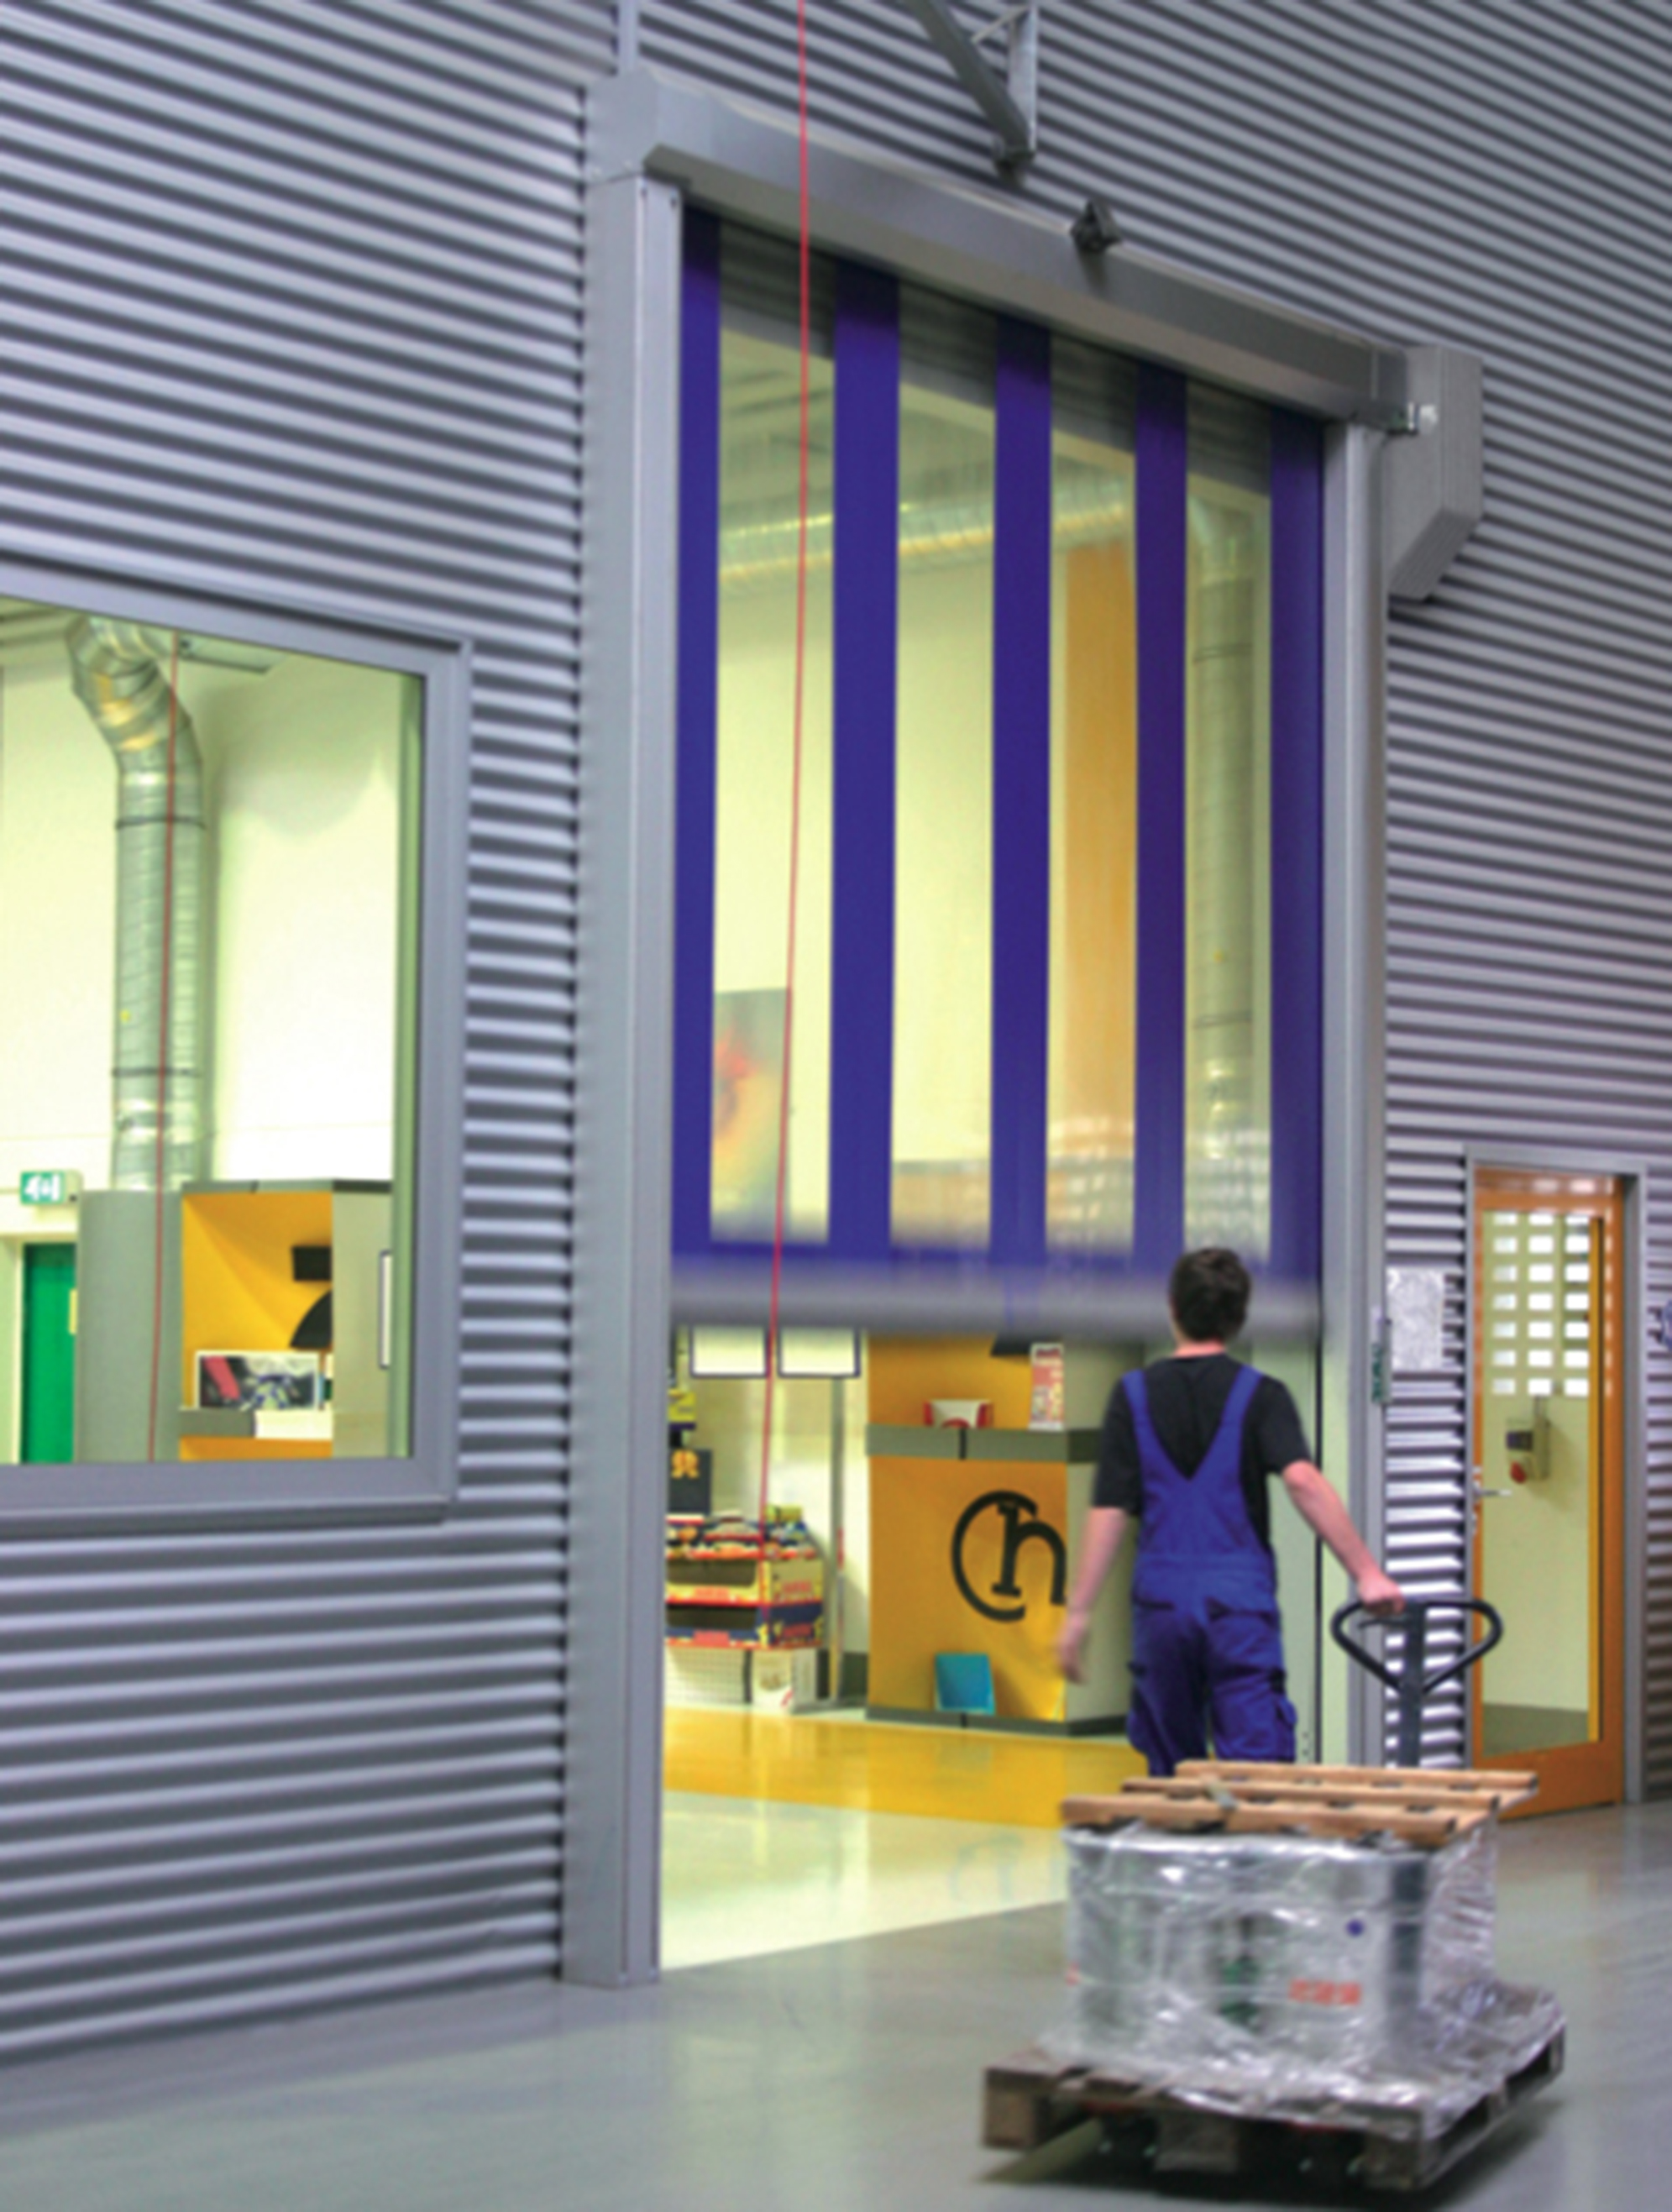 sara LBS roller shutter doors keep winter weather out at Glasgow paper plant